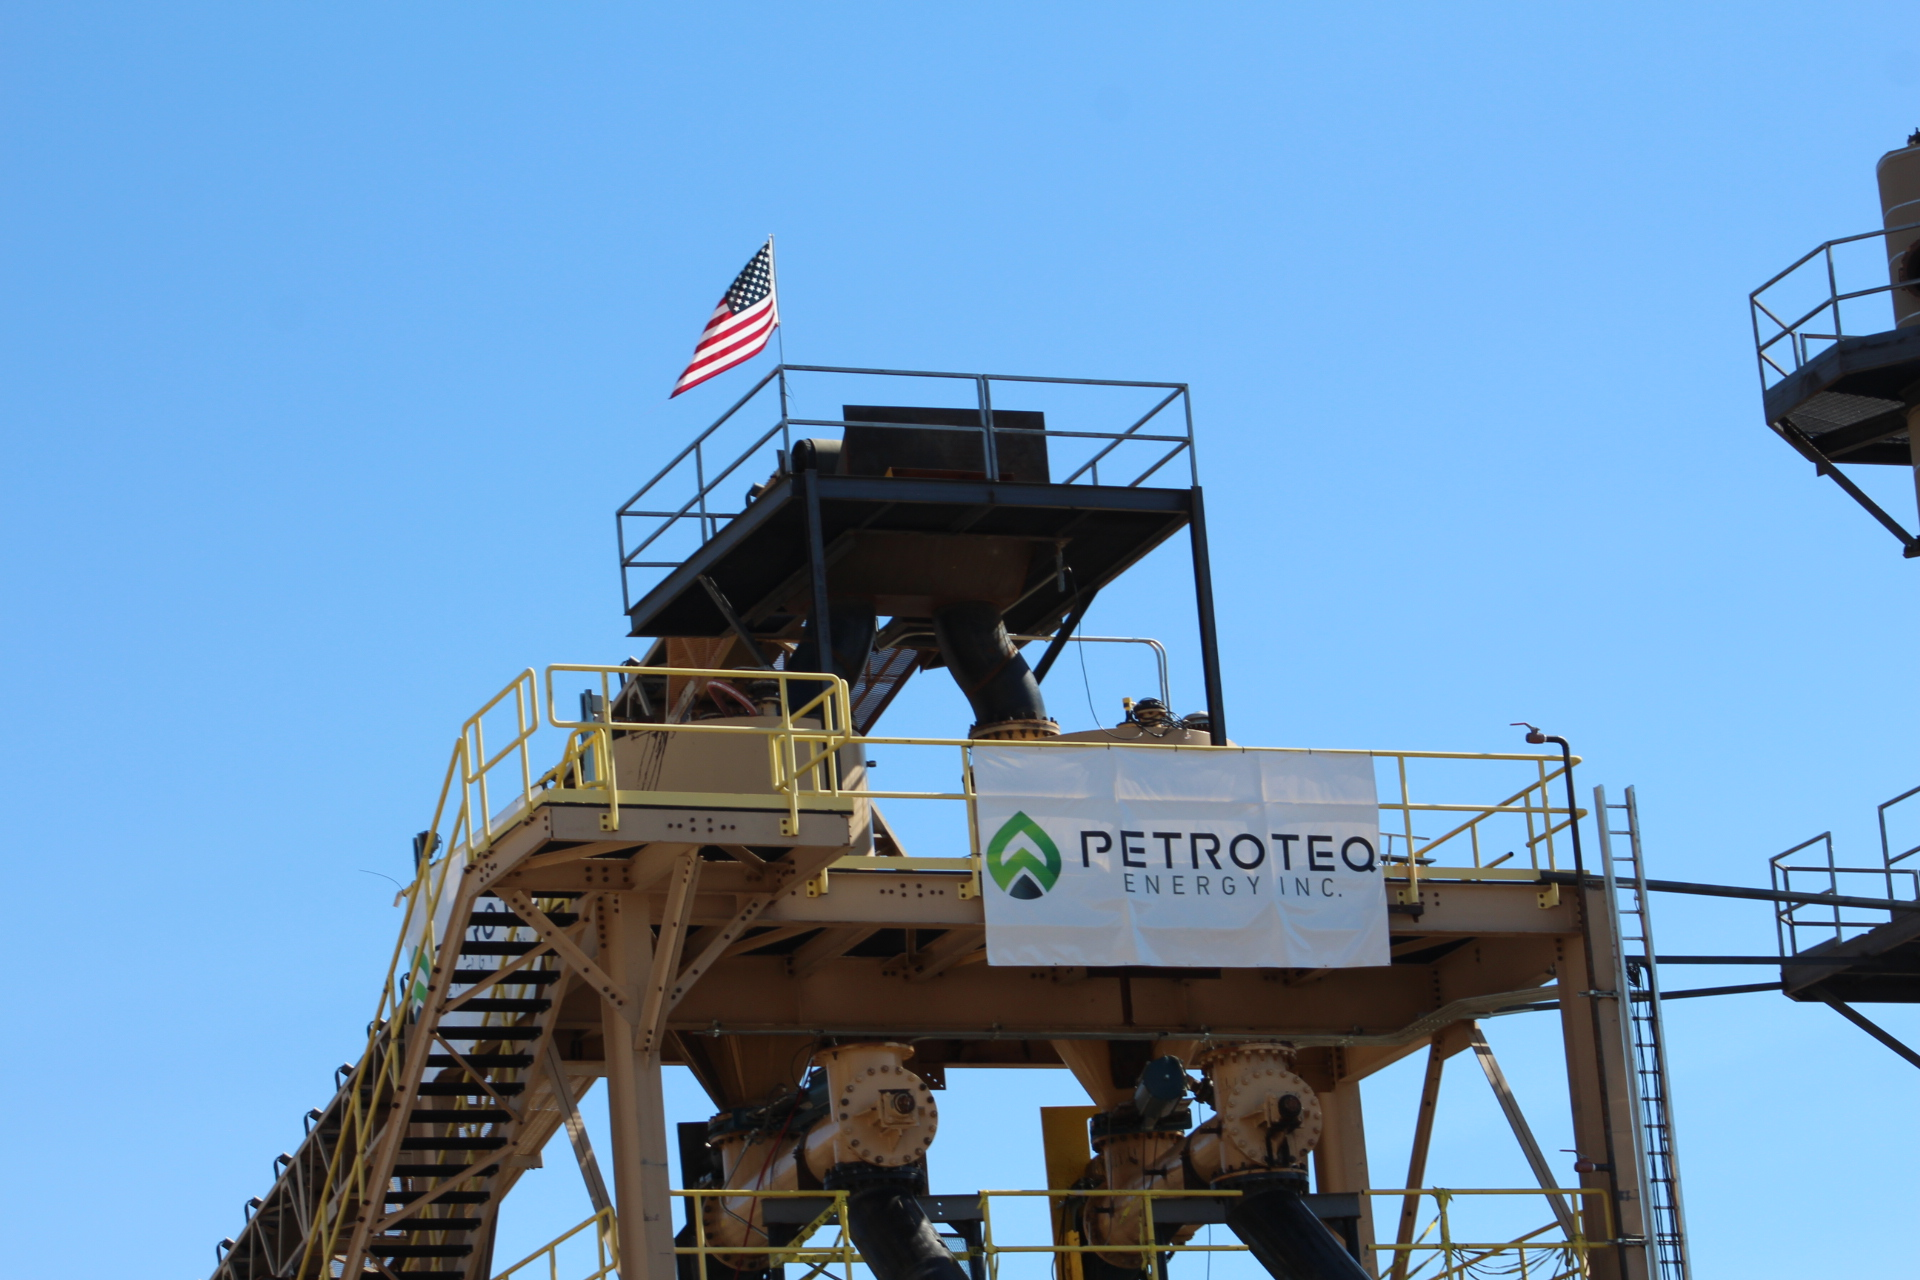 Petroteq Energy